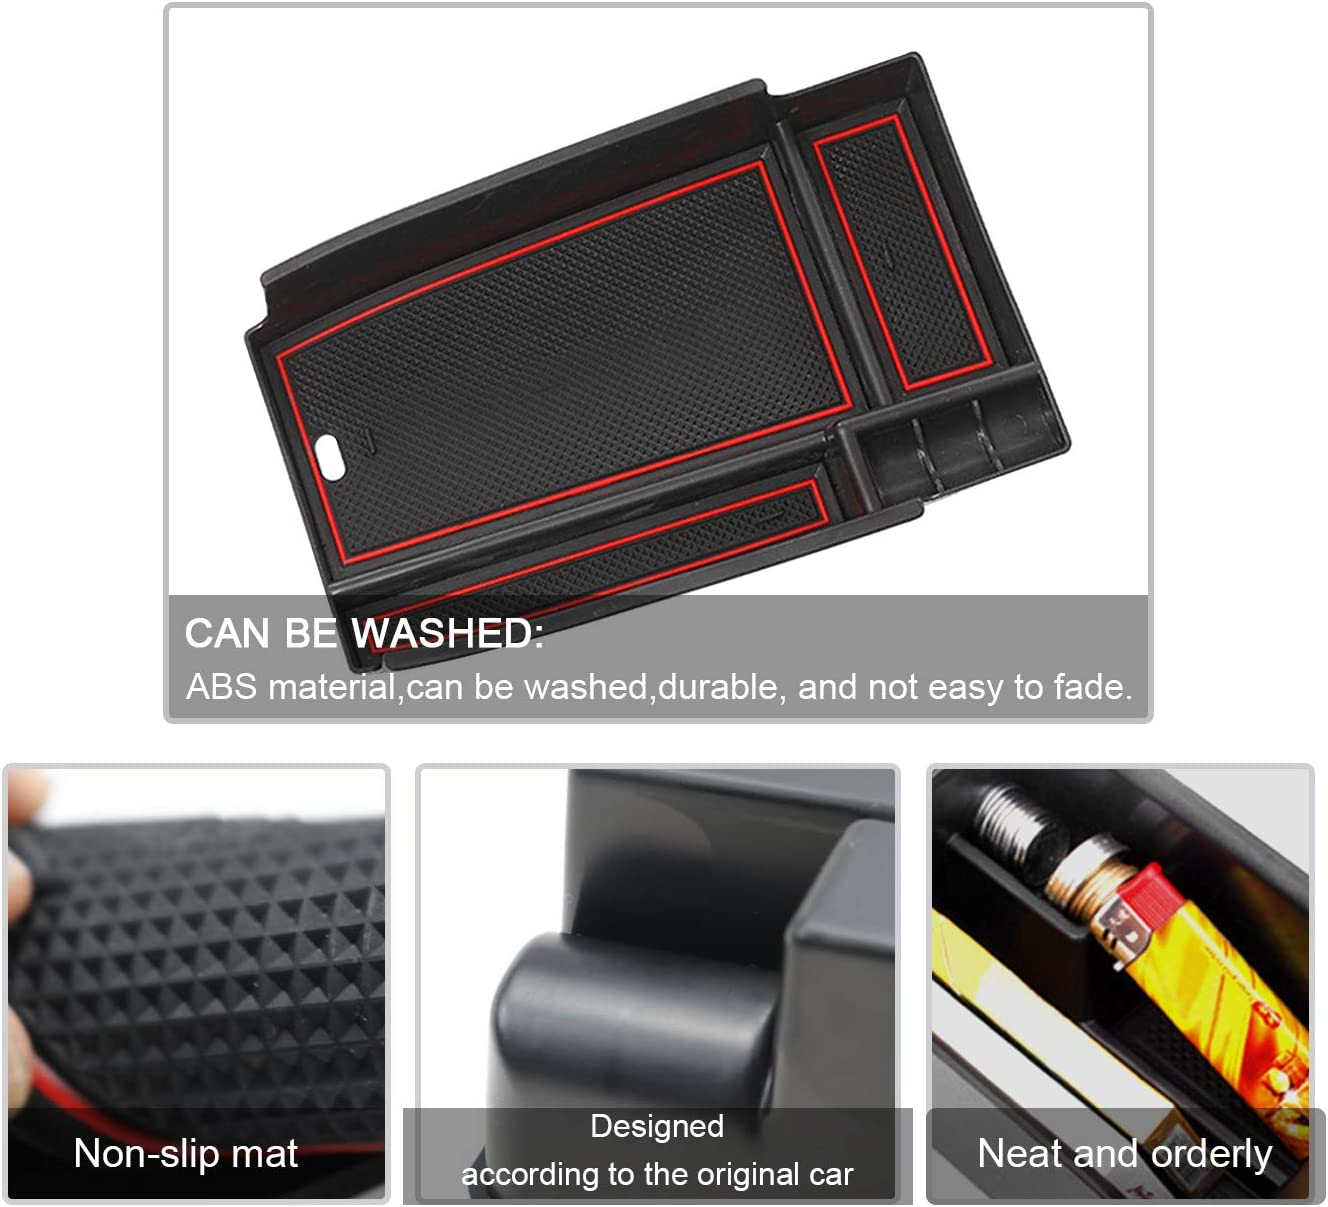 ABS Tray Armrest Box Secondary Storage Coin Holder CDEFG Center Console Organizer Tray for 2020 Escape